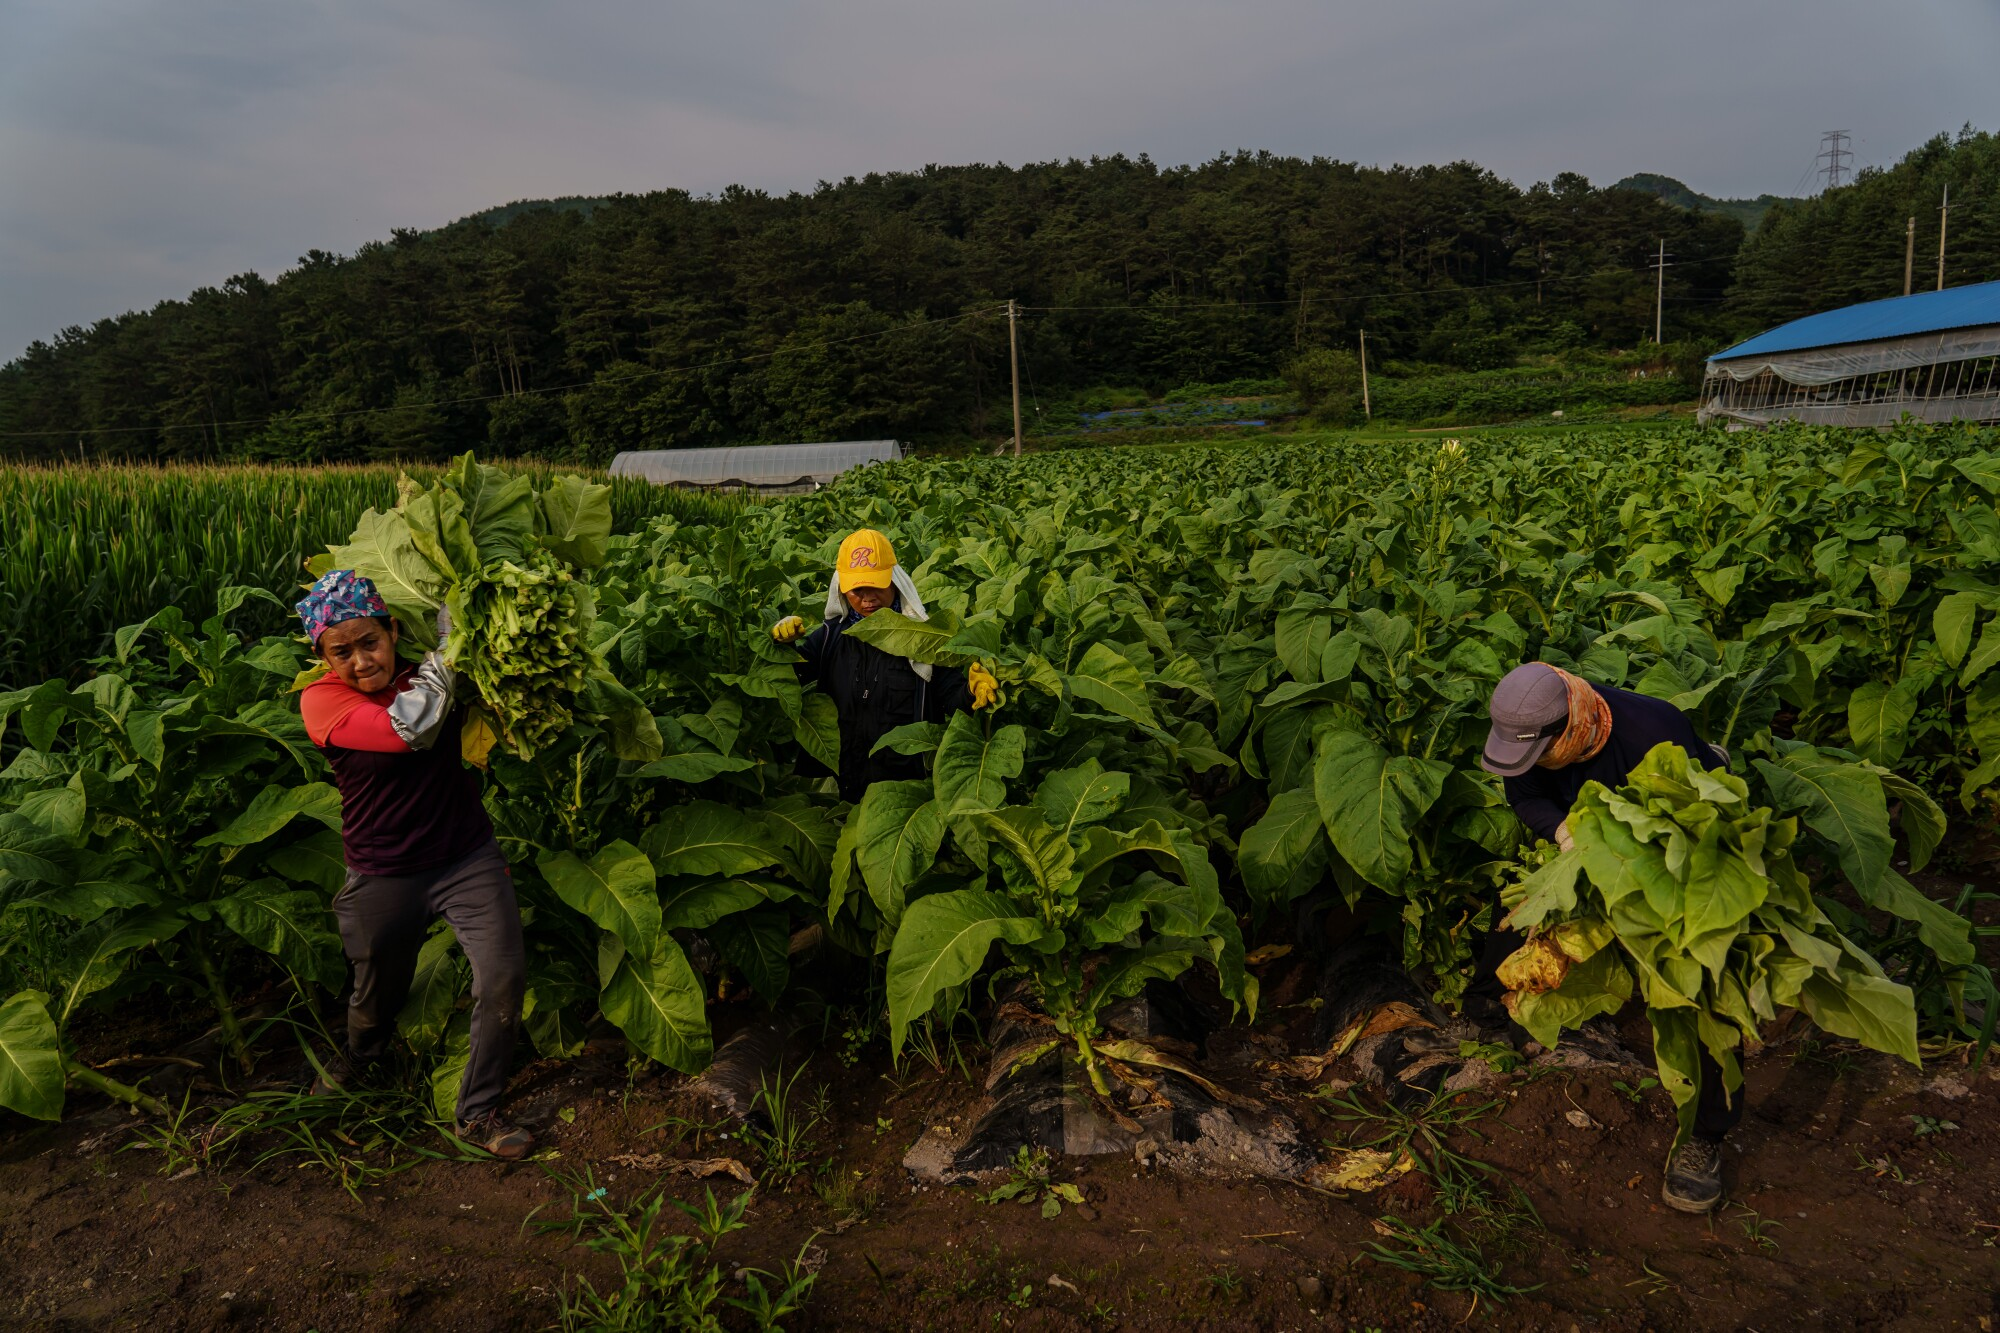 Thai migrant workers work in Park Jong-bum's tobacco fields in Bokheung-Myeon, in the southwest of South Korea, in July.